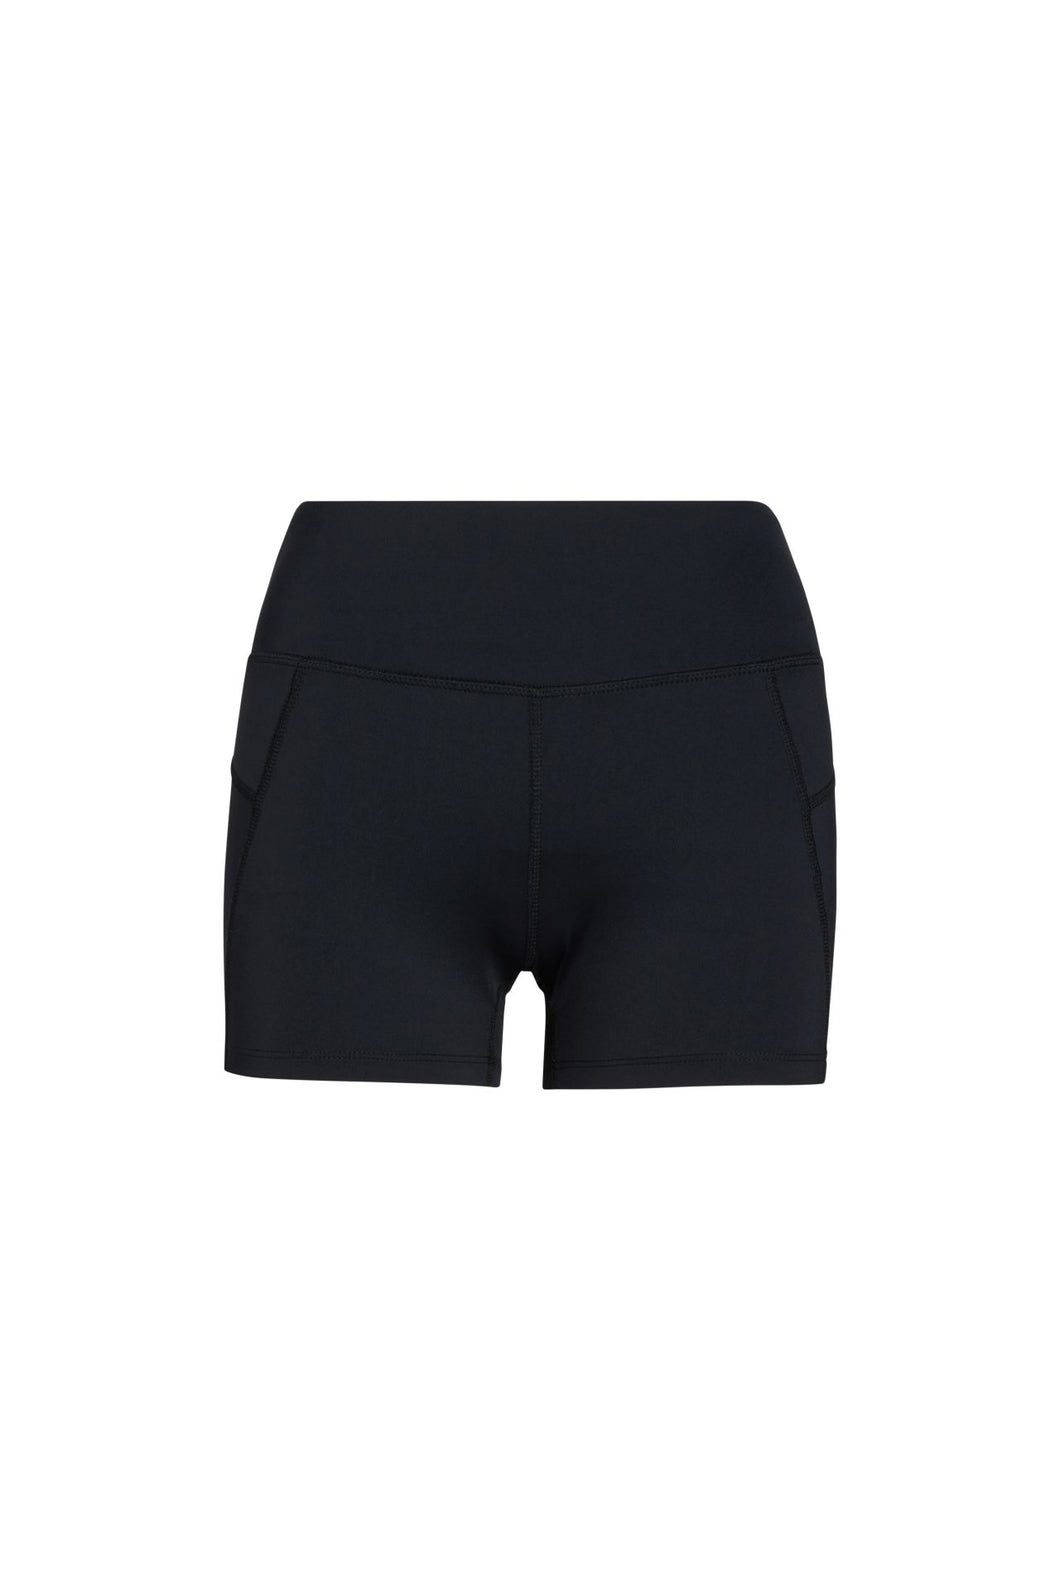 Women's Power Spine-Hip Shorts